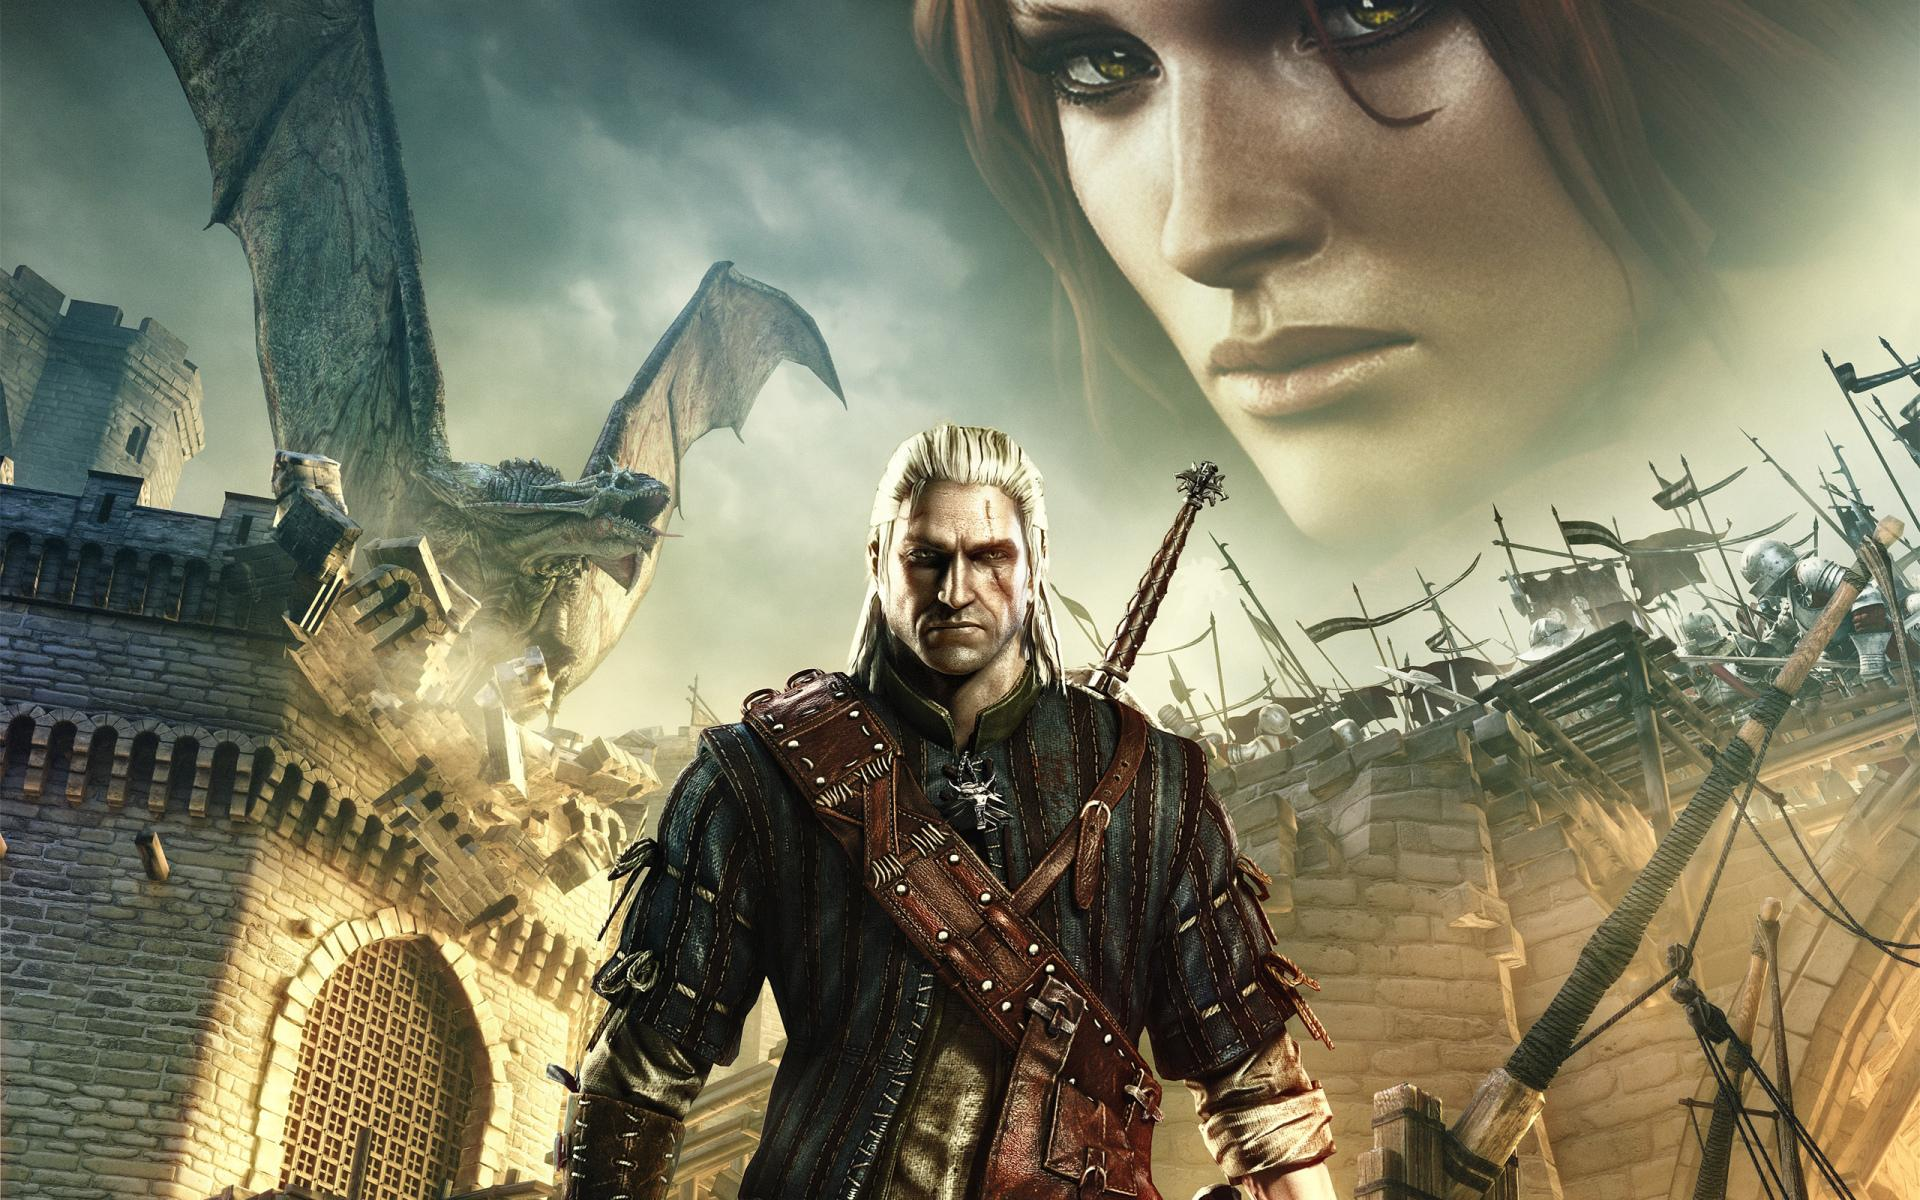 Art - Witcher 2: Assassins of Kings, the Арт